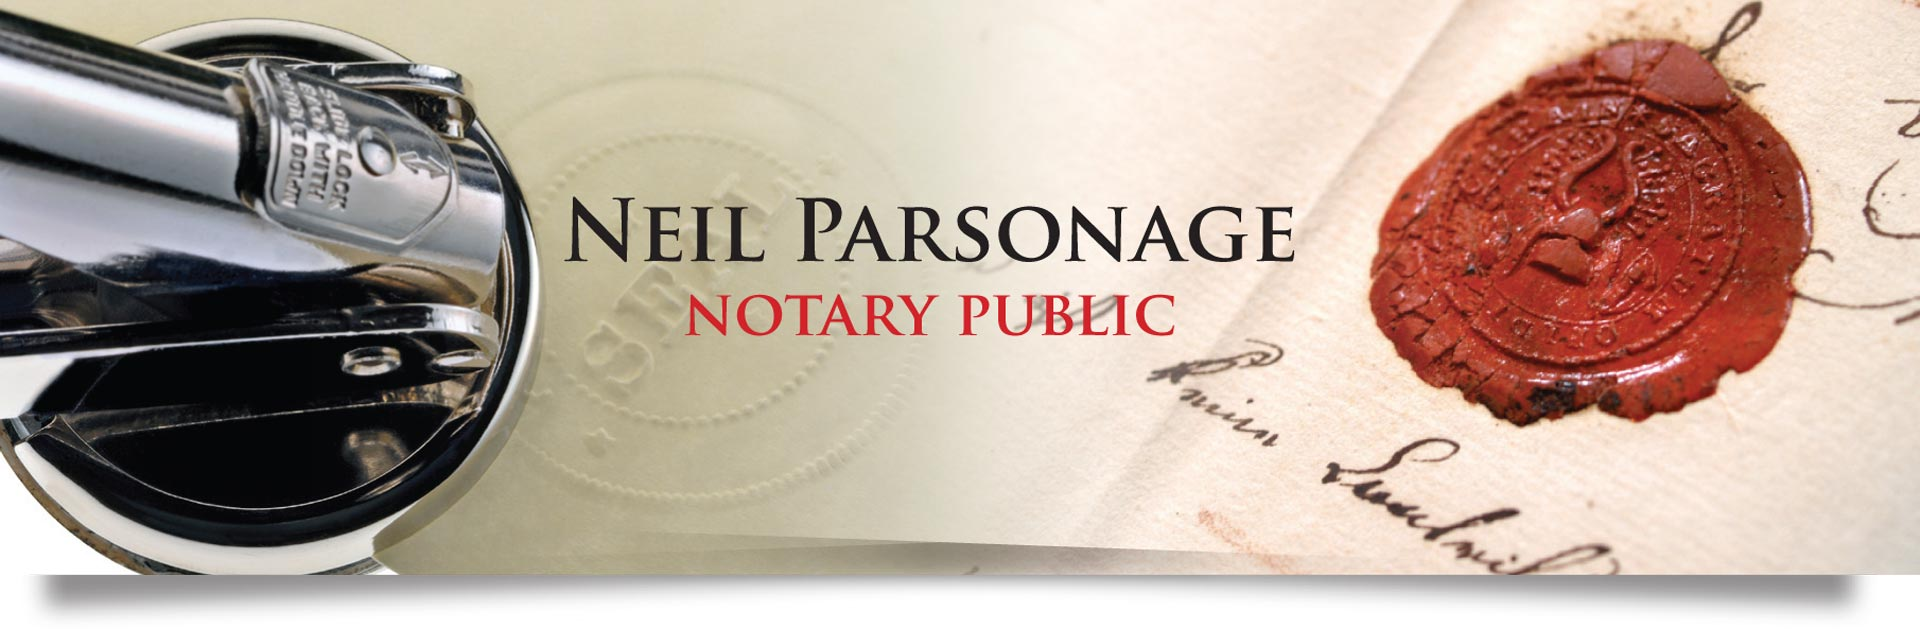 notary public Wigan